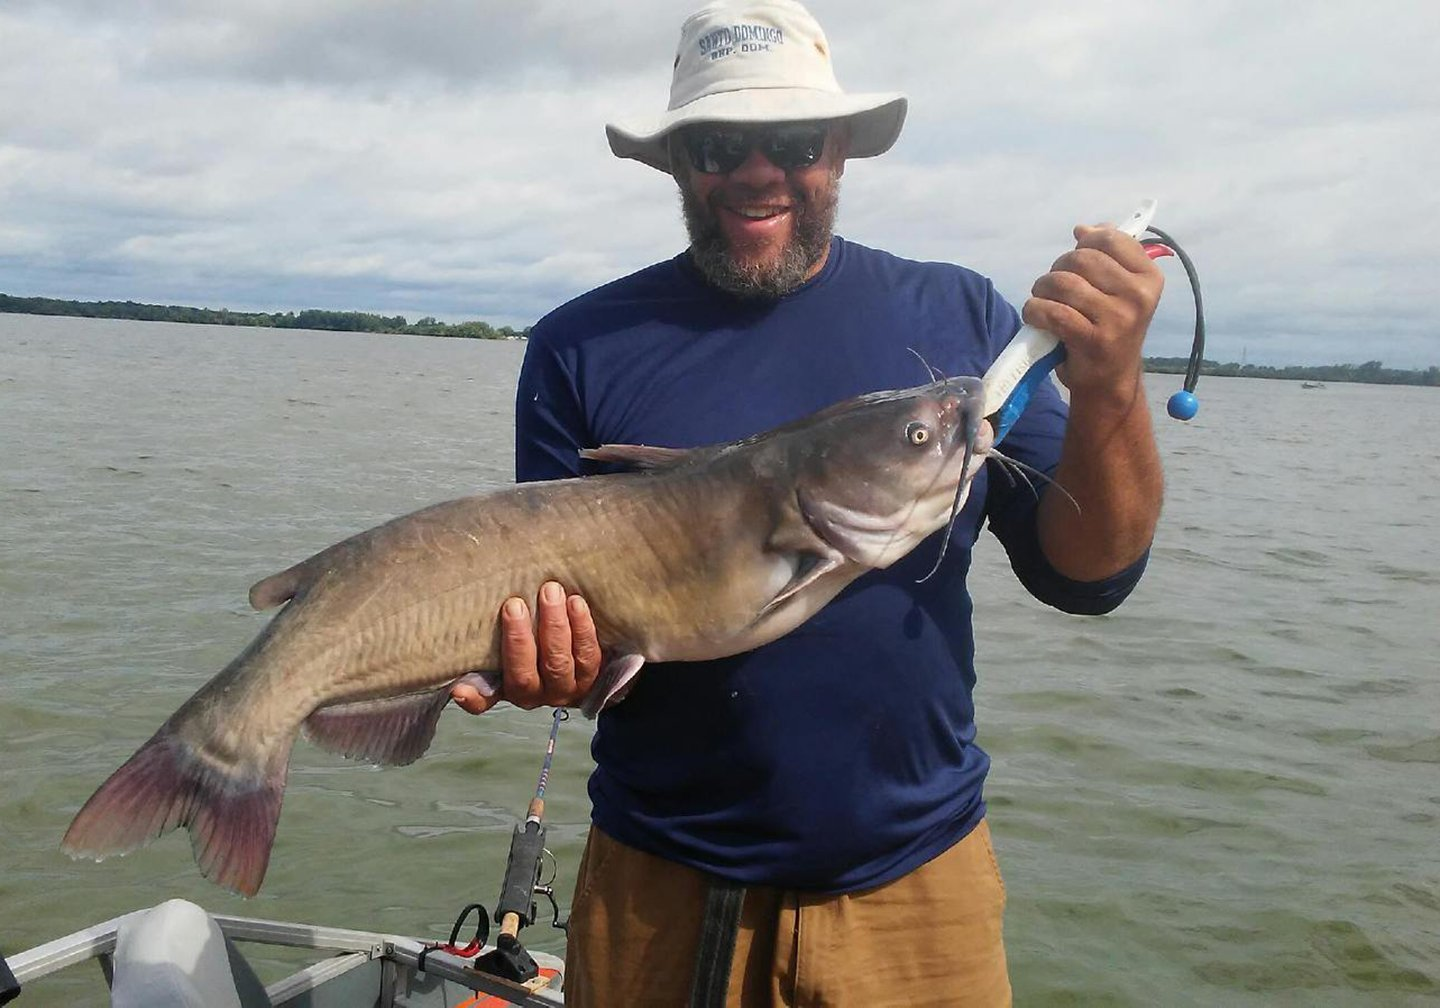 A smiling angler in a hat holding a Channel Catfish with water in the background